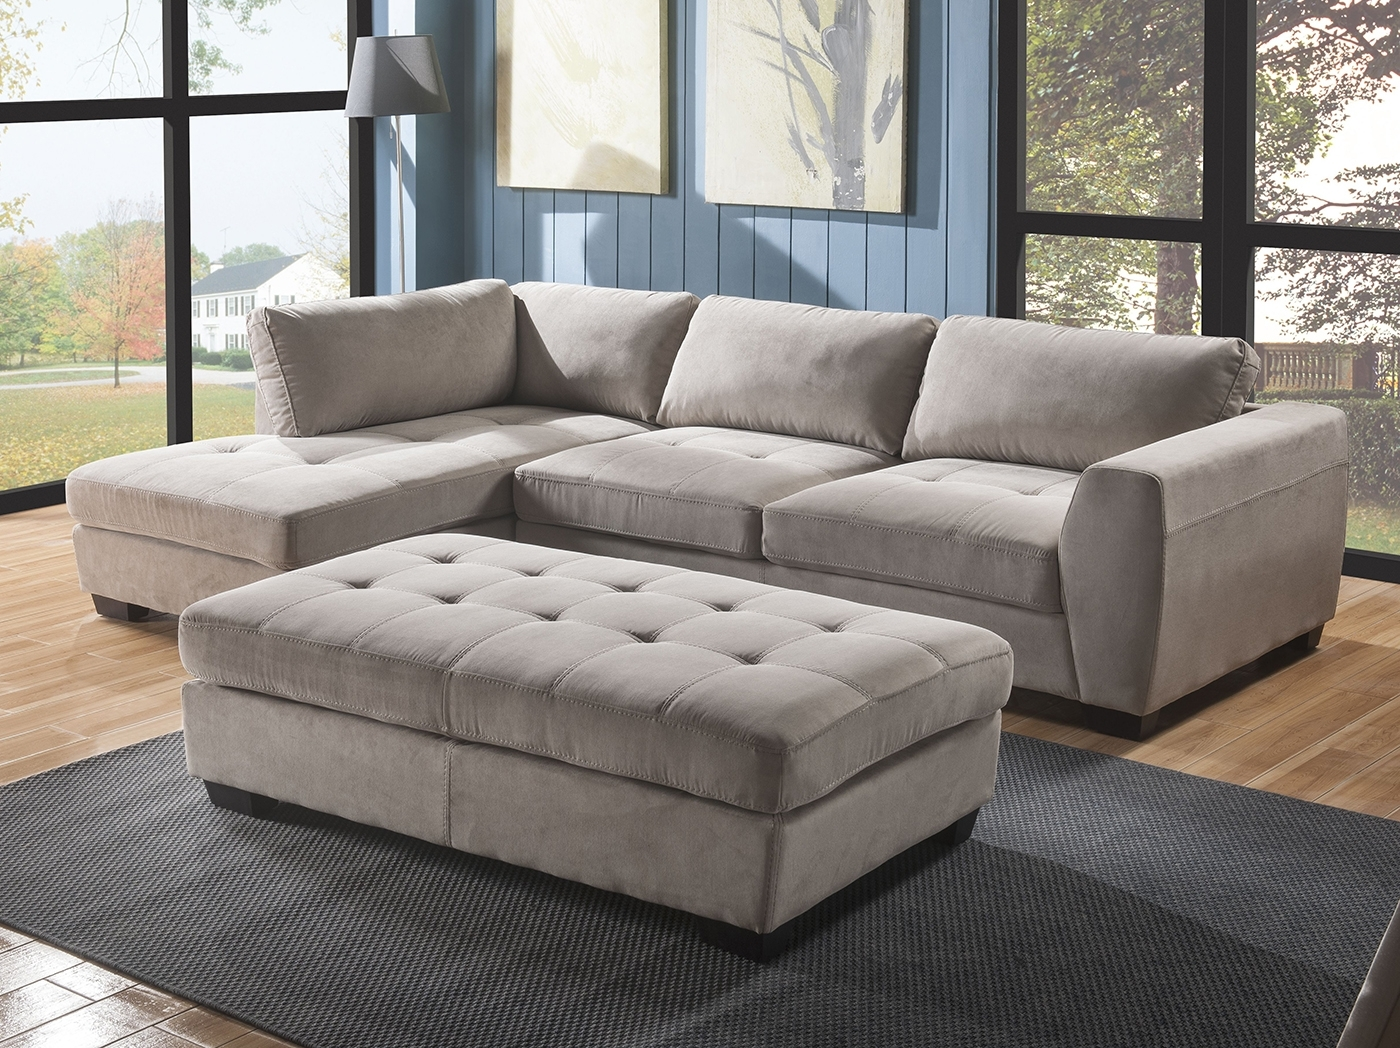 Trendy Nh Sectional Sofas Inside Sofas : Marvelous Living Room Sectionals Leather Reclining (View 19 of 20)